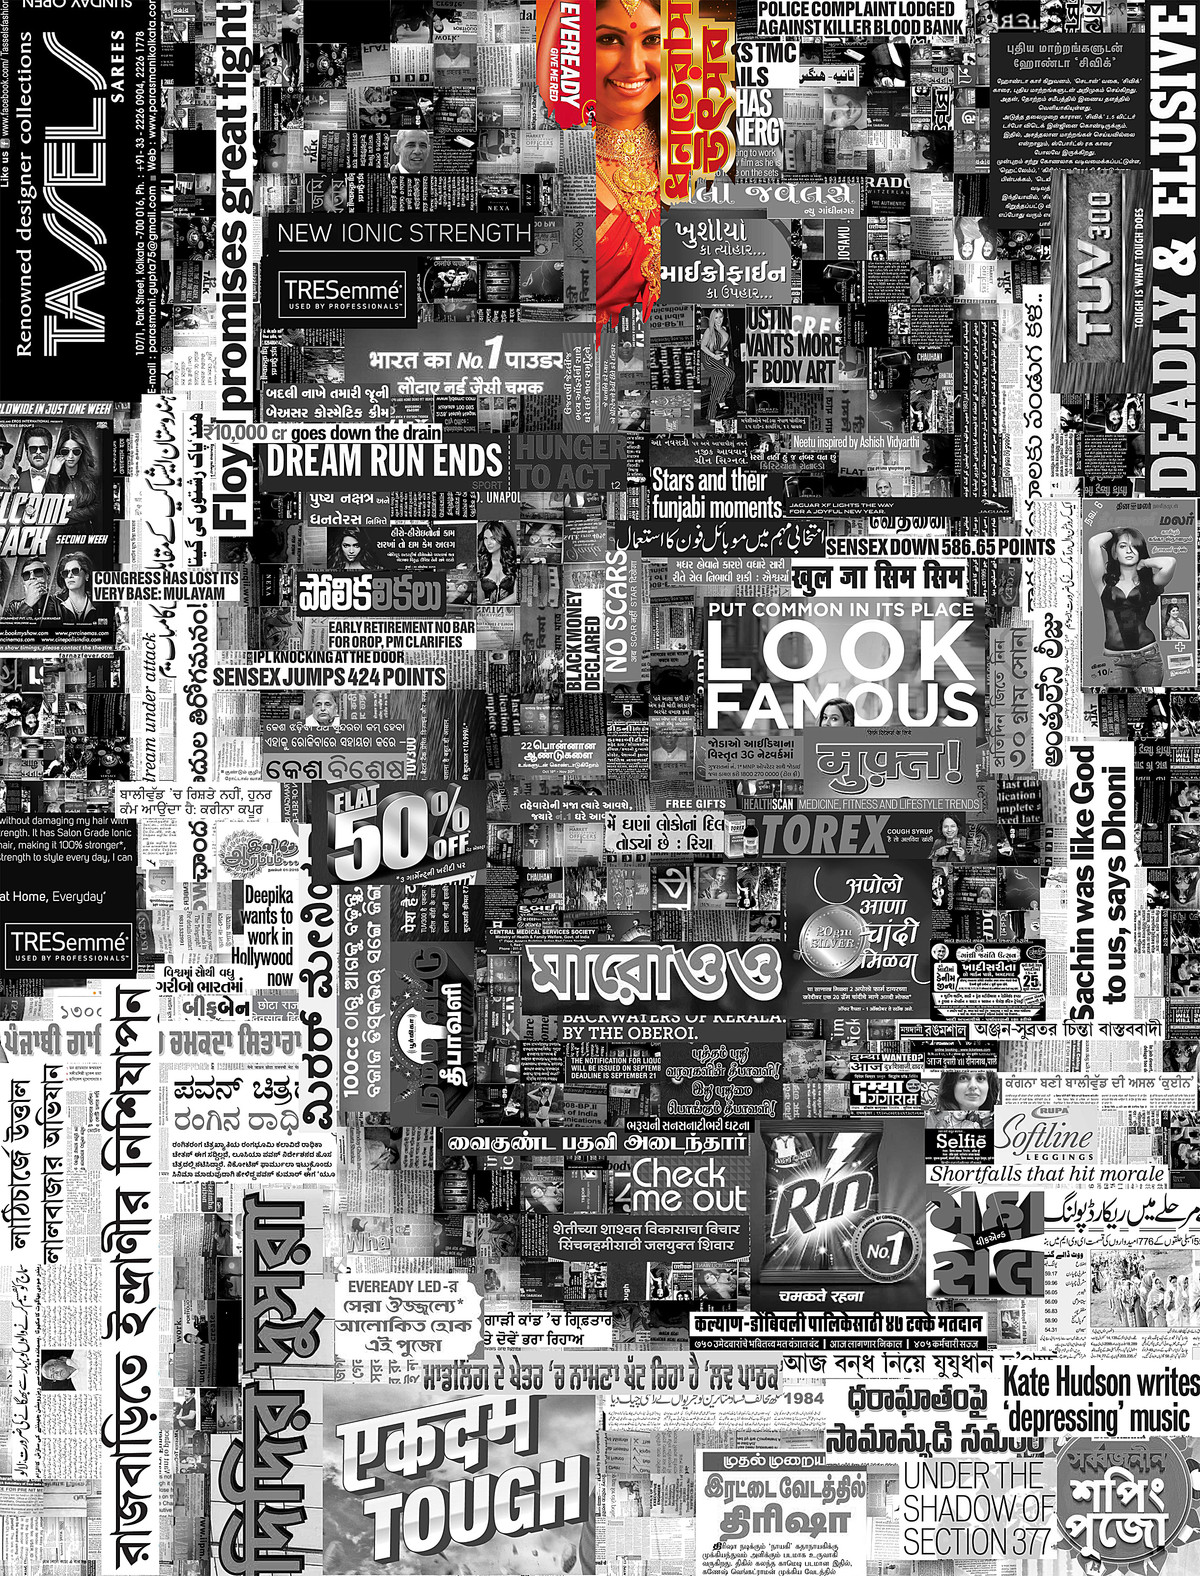 You Are Not In The News 08 by Saptarshi Das, Pop Art Digital Art, Digital Print on Paper, Gray color